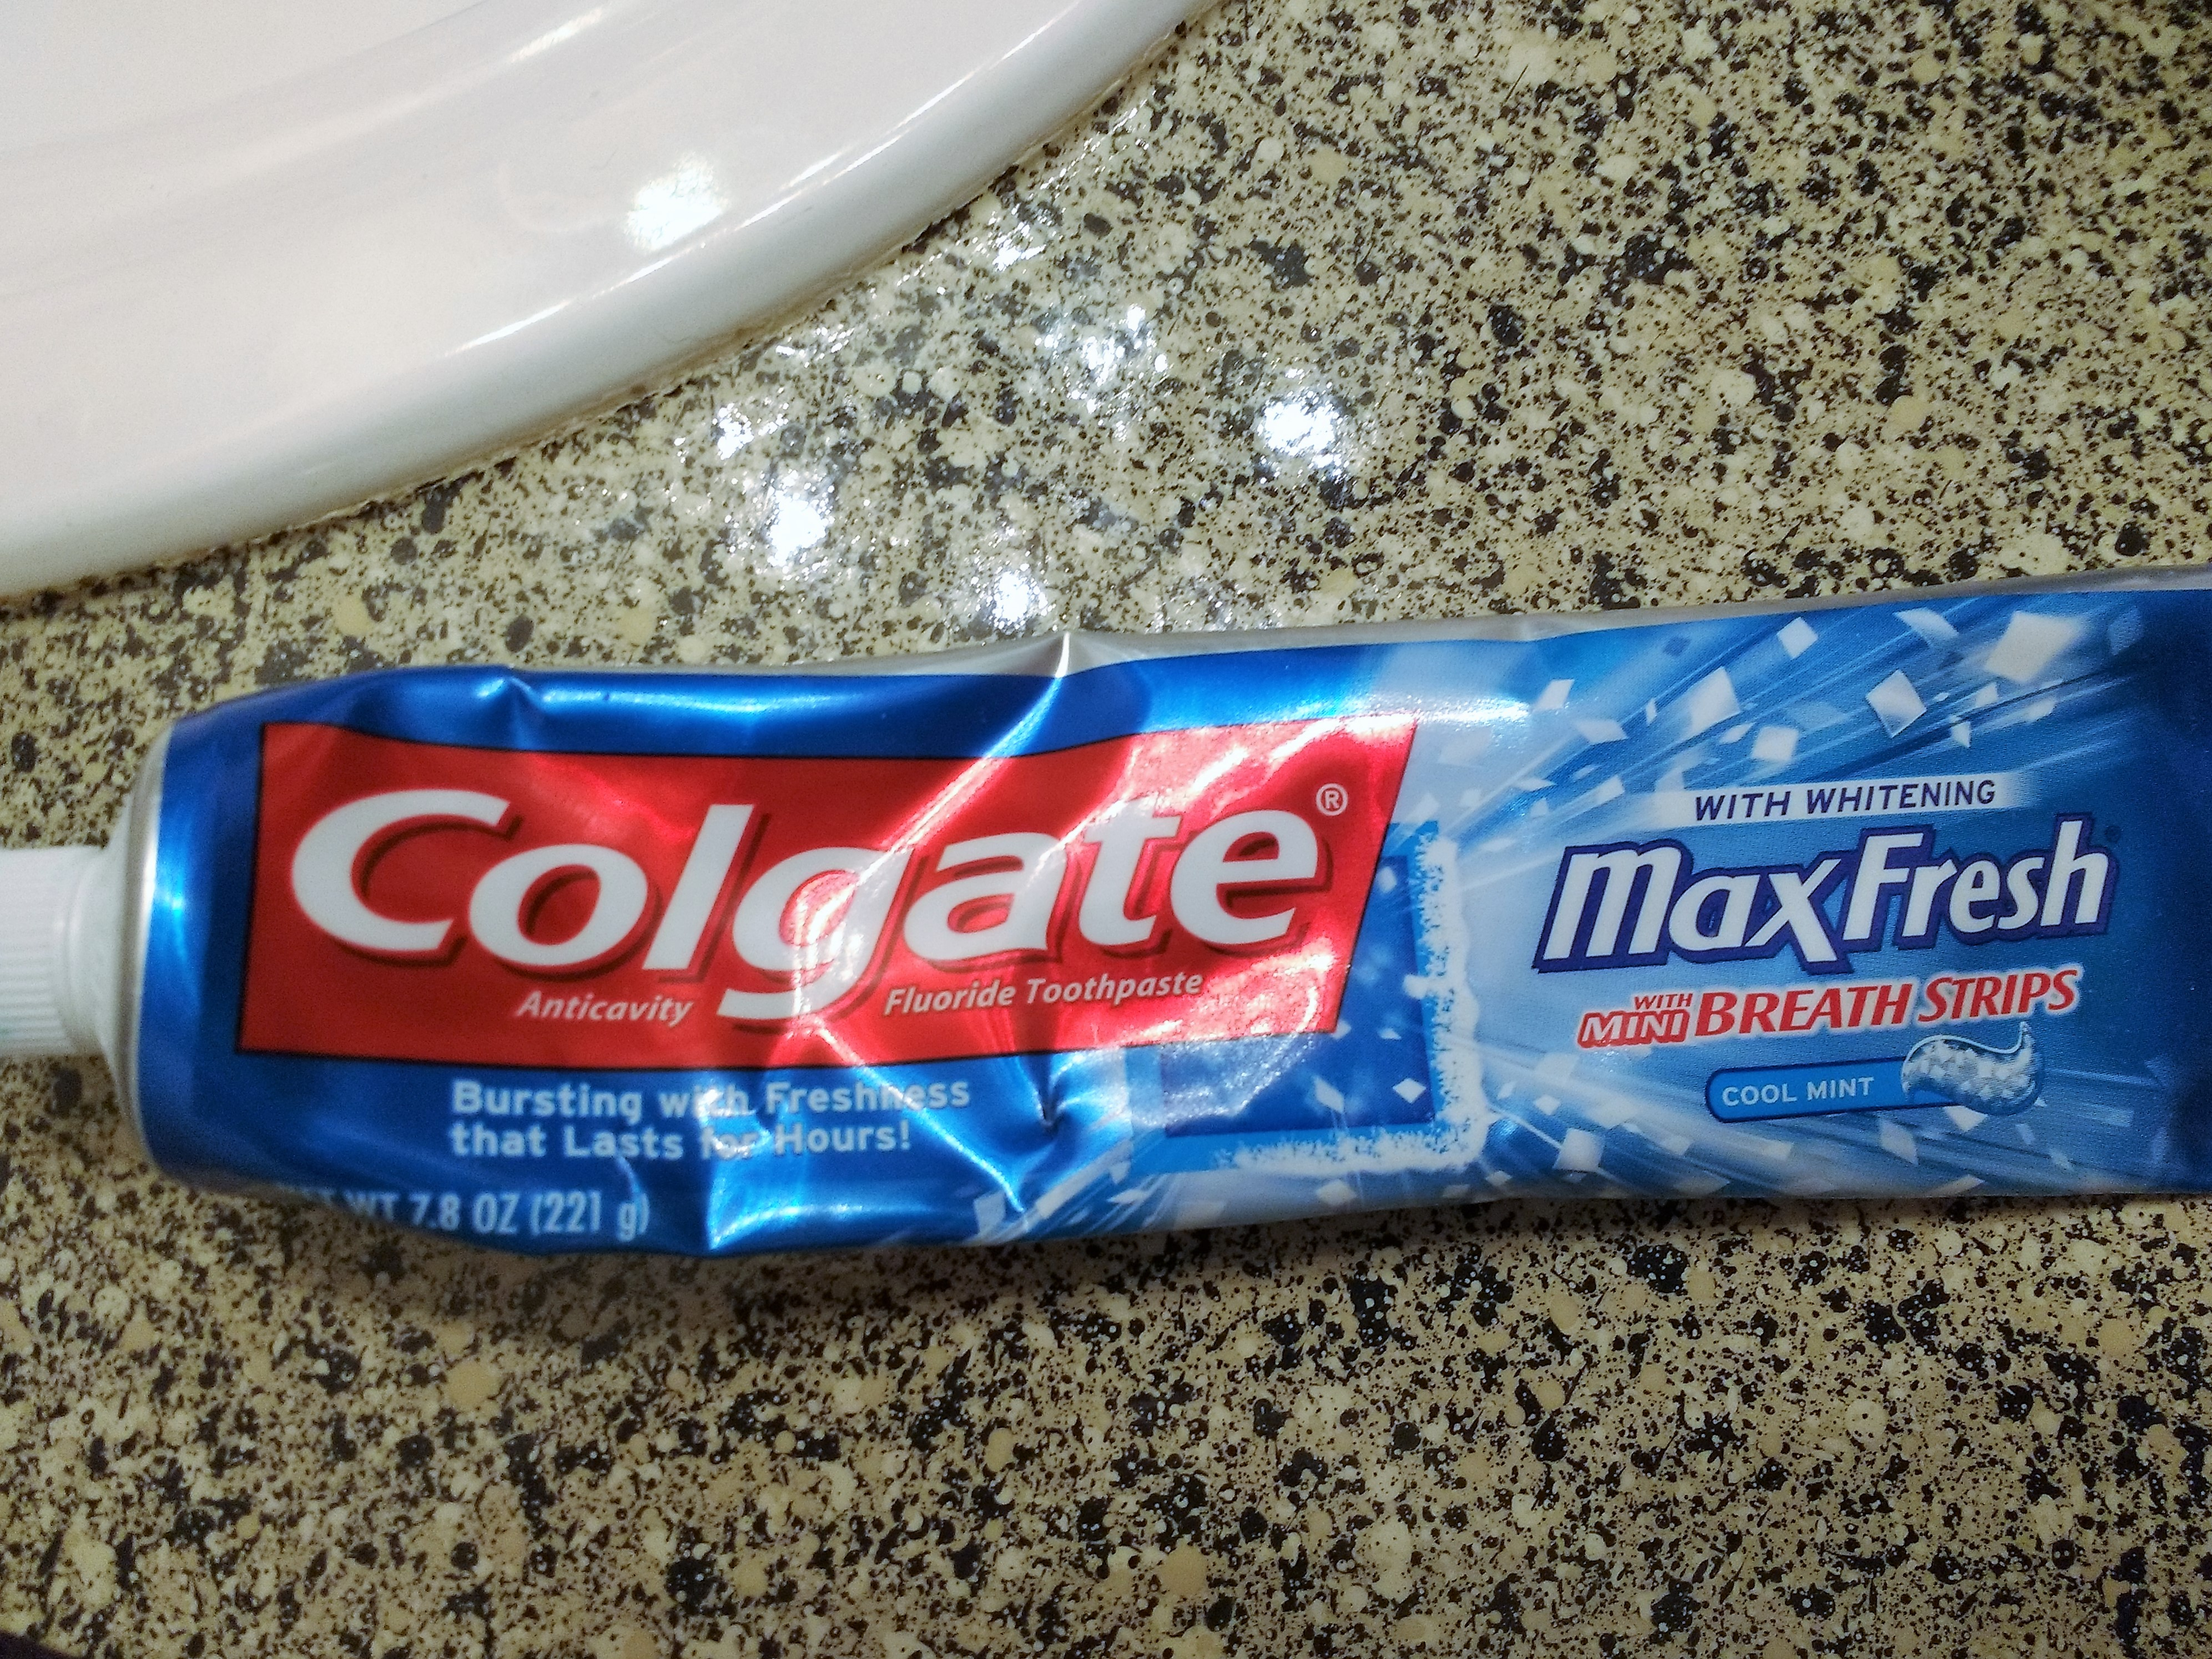 colgate max fresh case study In today's post, i would like to focus on colgate's max fresh with mini breath strips brand toothpaste this smells like a marketing gimmick to me i'd like to see some studies that actually prove that this toothpaste freshens breath better than its non-breathstrip encrusted cousins.